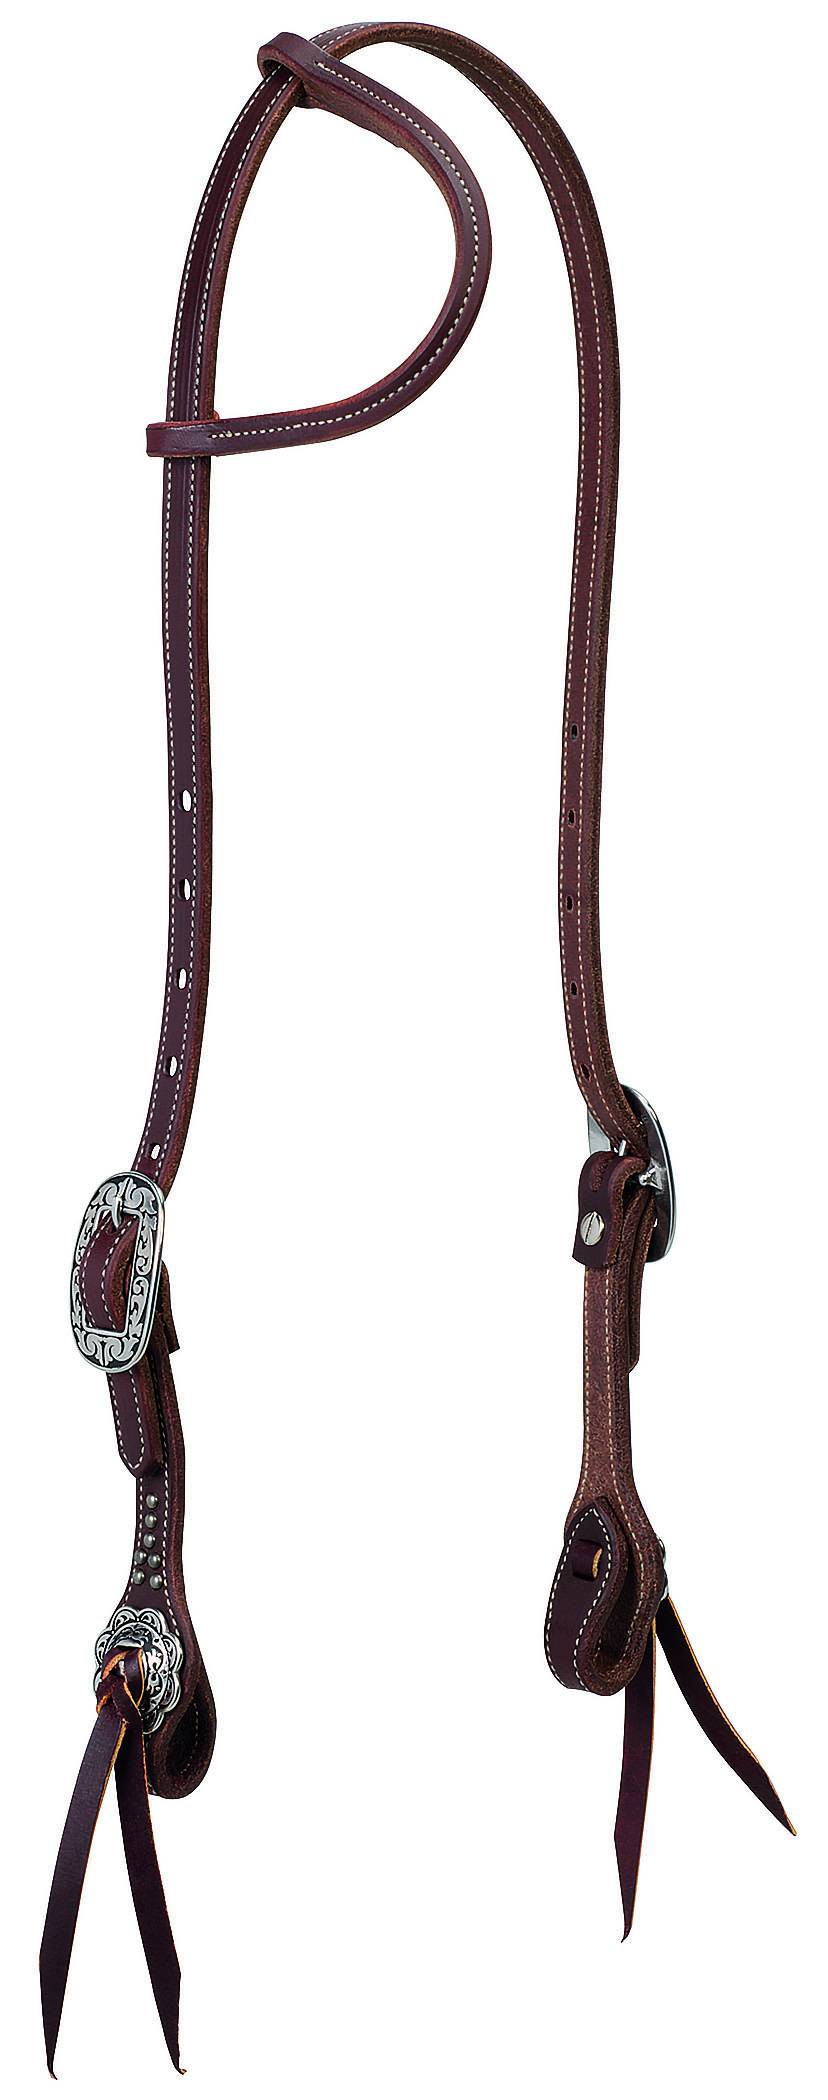 Weaver Working Tack Sliding Ear Headstall - Floral Hardware